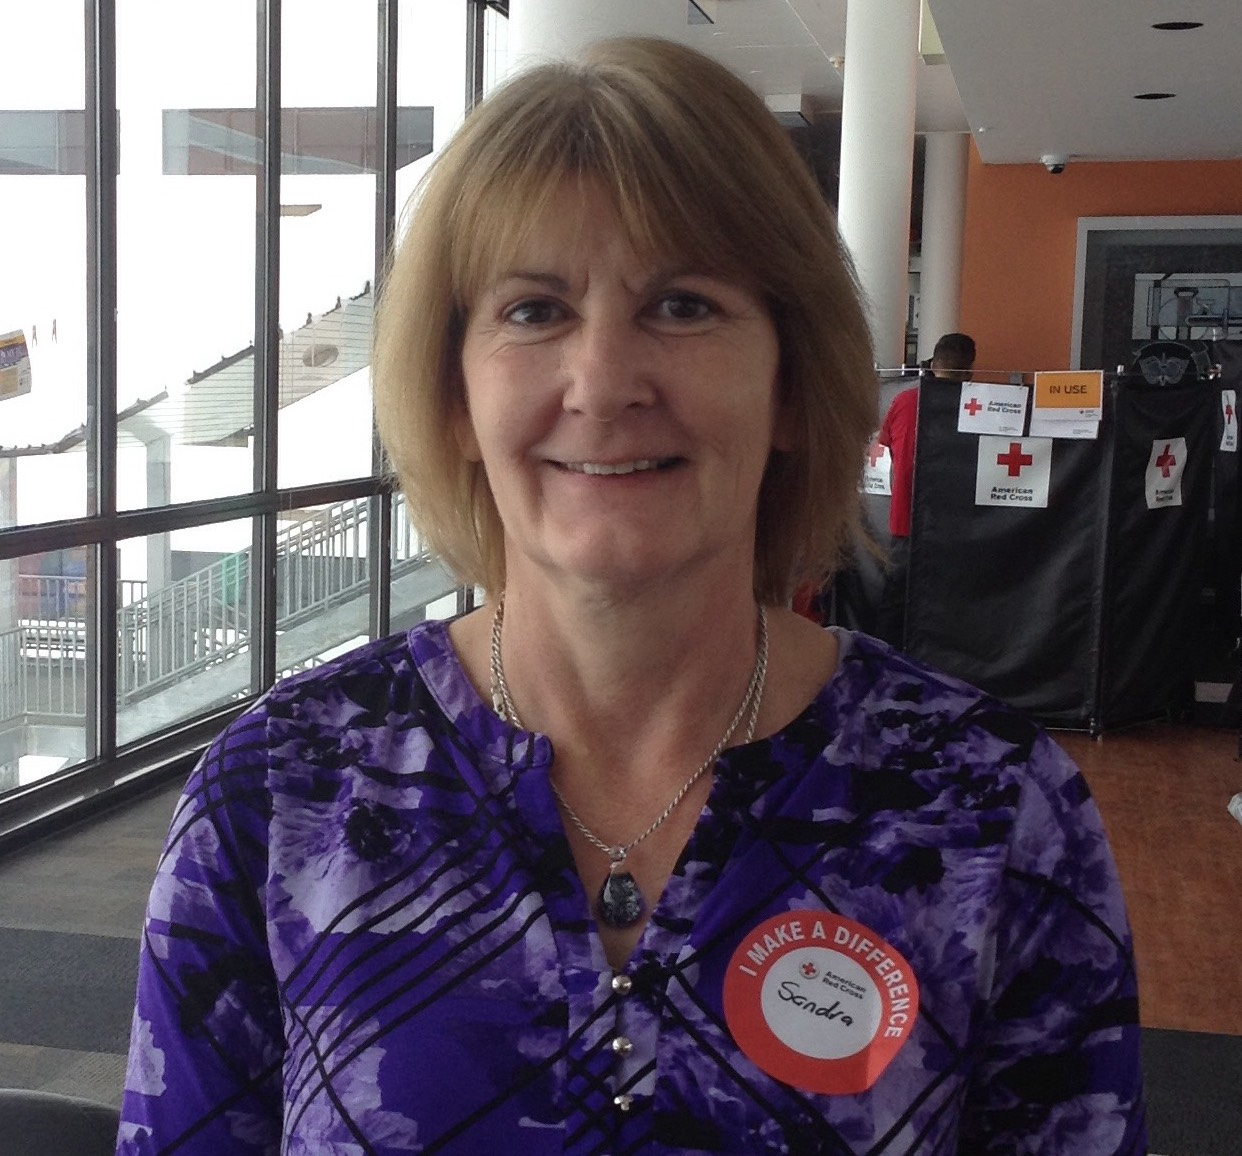 Sandra Bendel is a frequent donor at JJC drives.